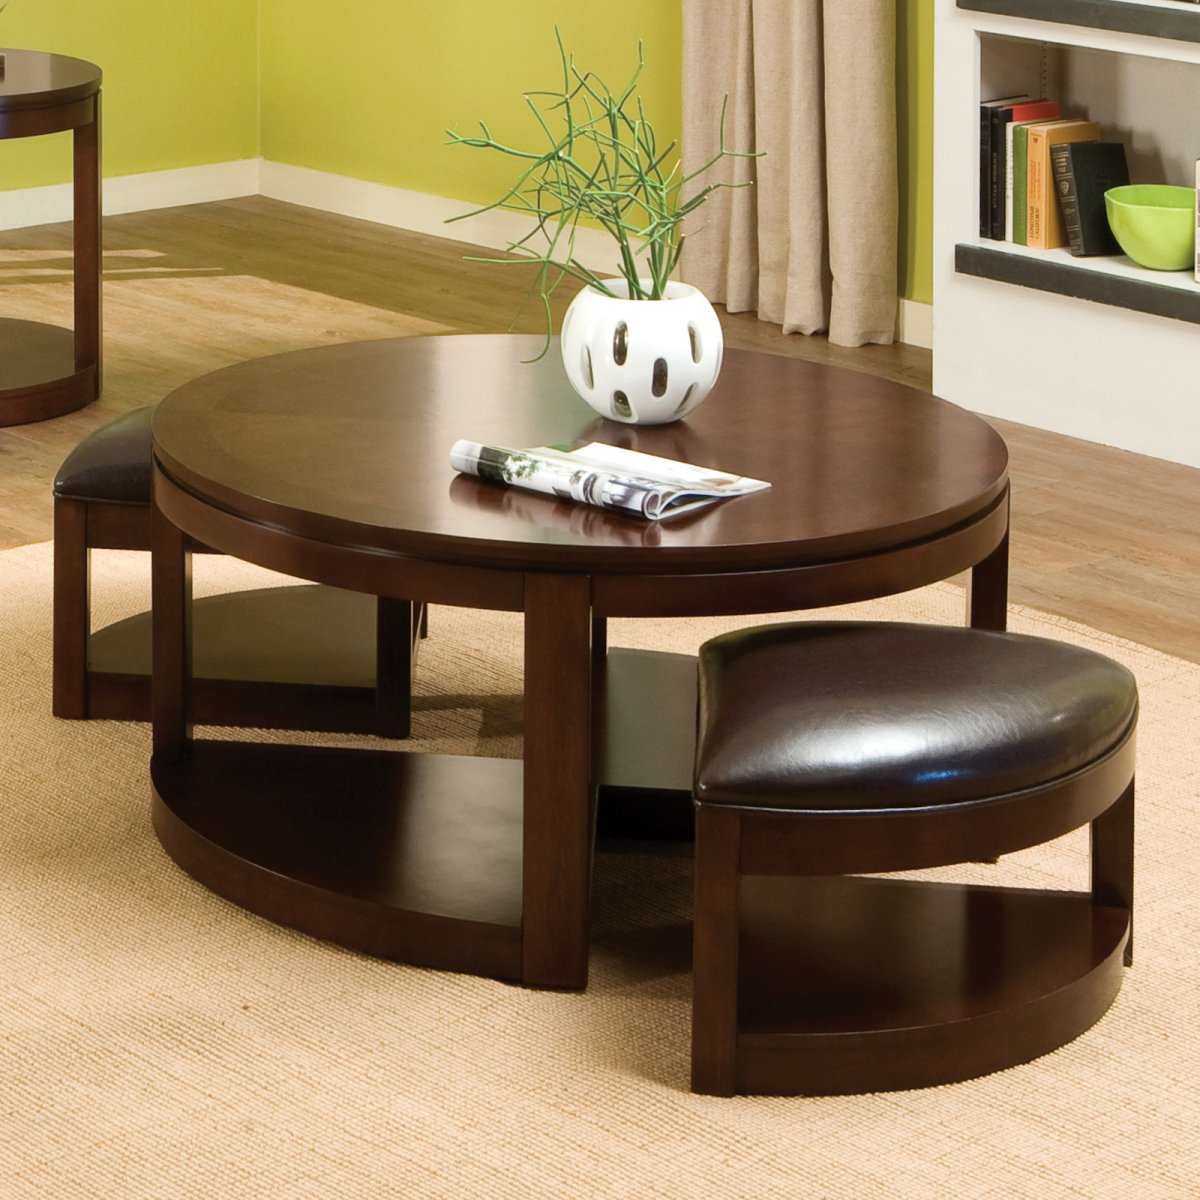 Gallery Of Coffee Table With Stools Underneath Round Coffee Table With Ottomans Underneath Glass Coffee Table With Ottomans (Image 4 of 10)